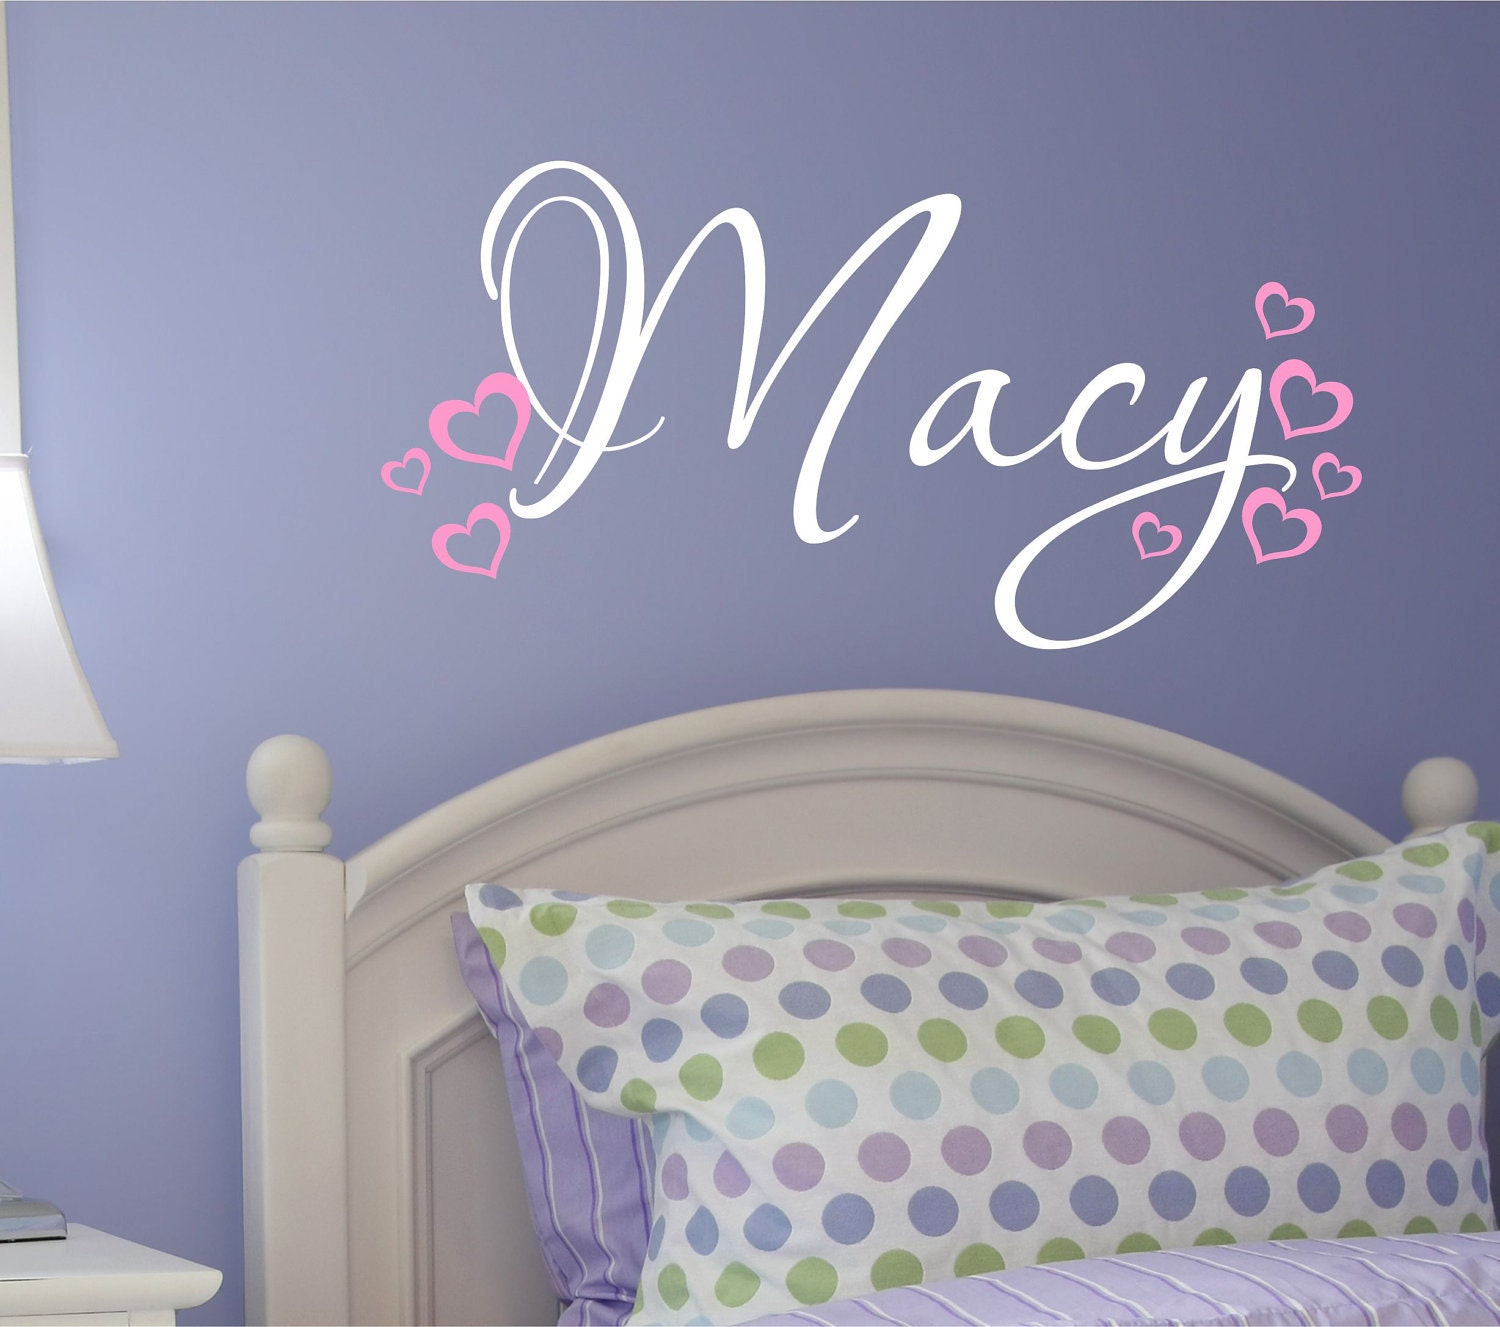 Custom Name Vinyl Wall Decals Custom Vinyl Decals - Vinyl wall stickers custom